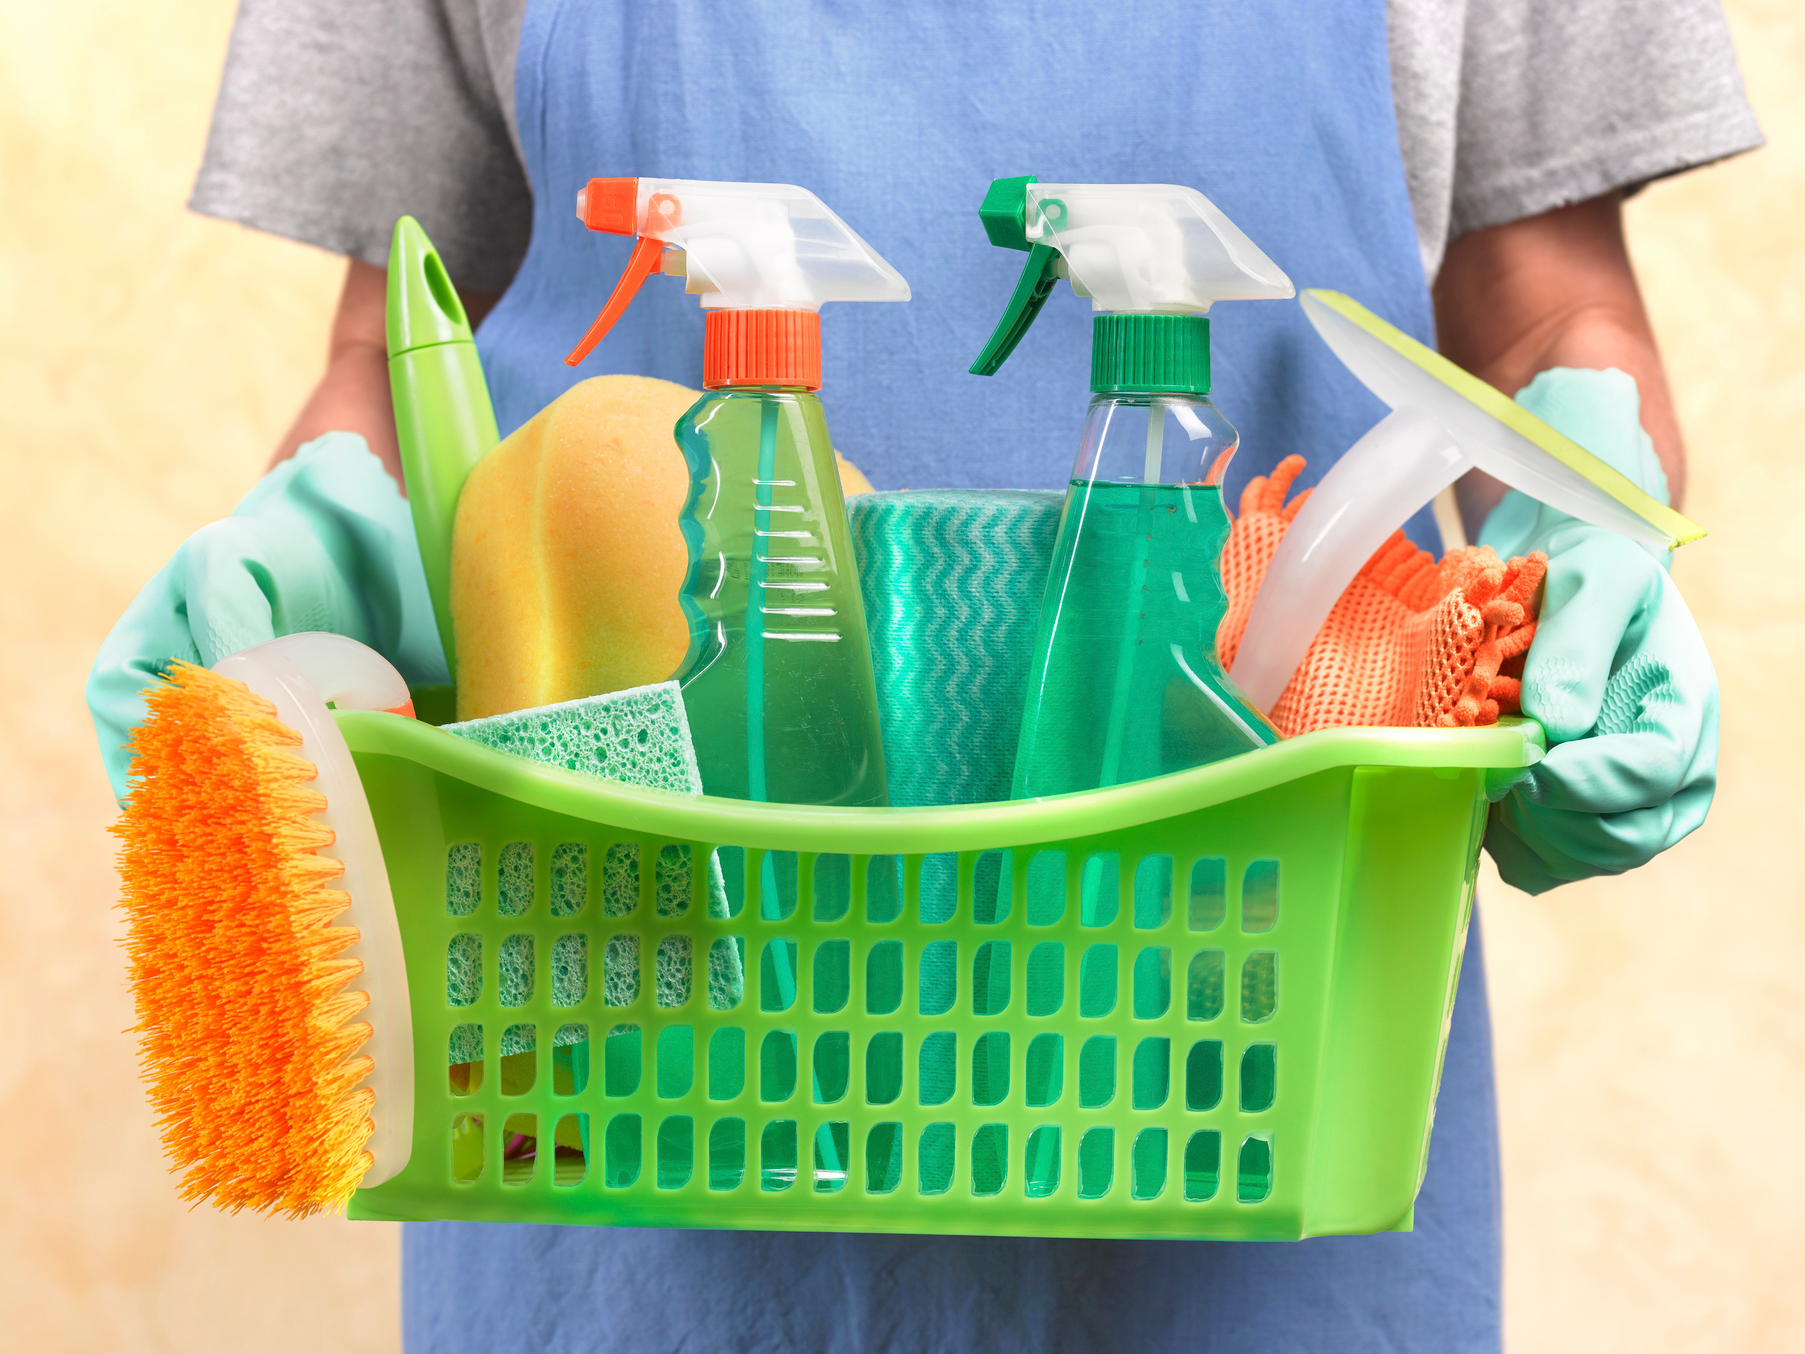 What are the Best Items to Buy When Shopping for Cleaning Supplies